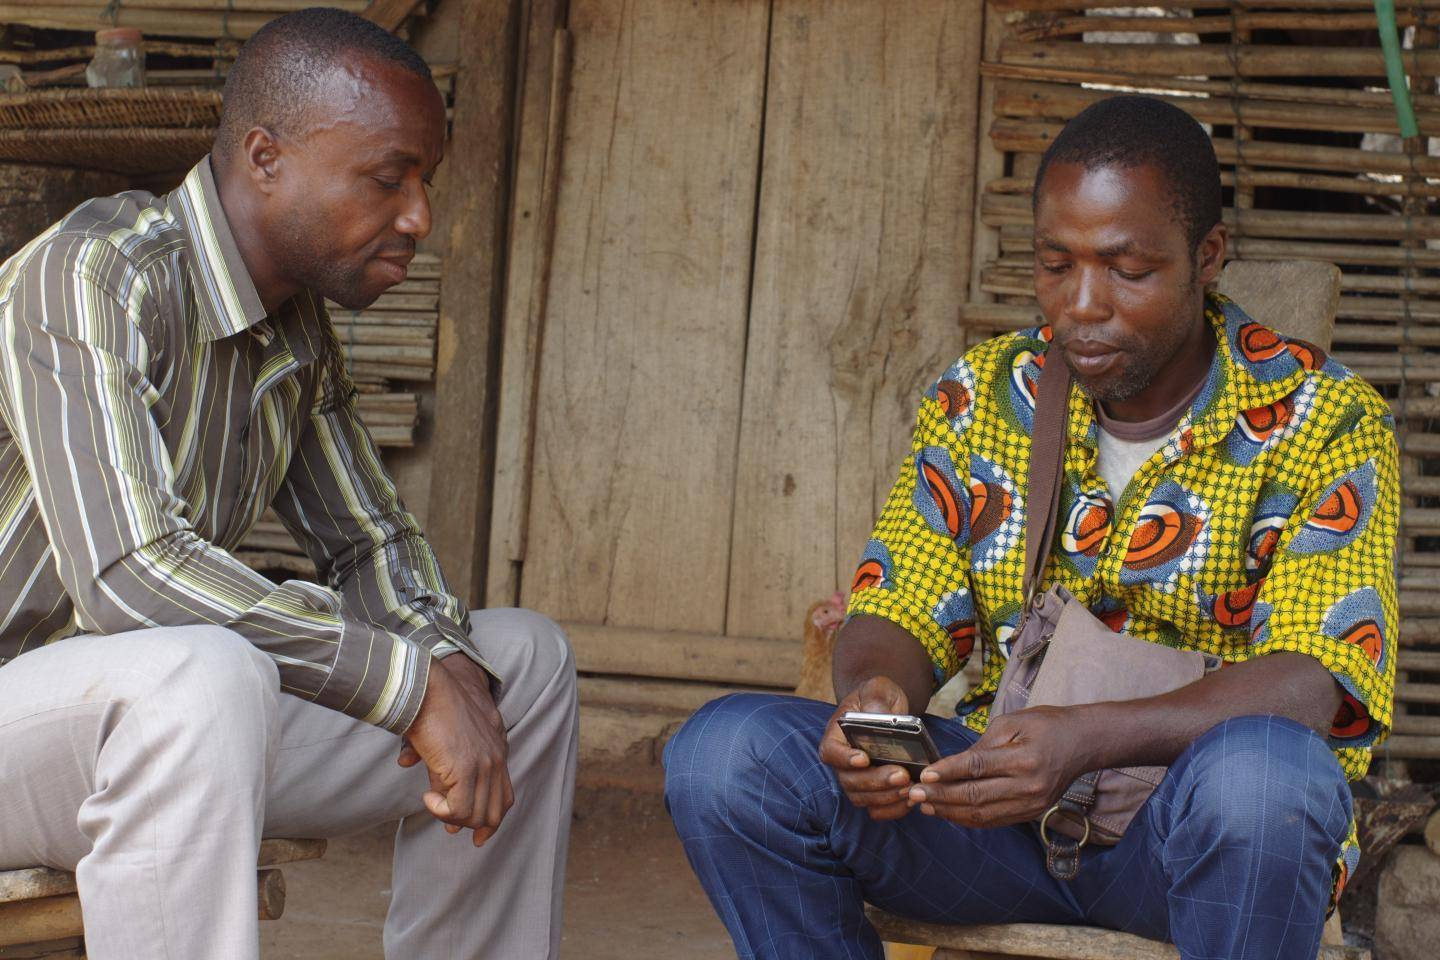 Cocoa farmers with smartphones